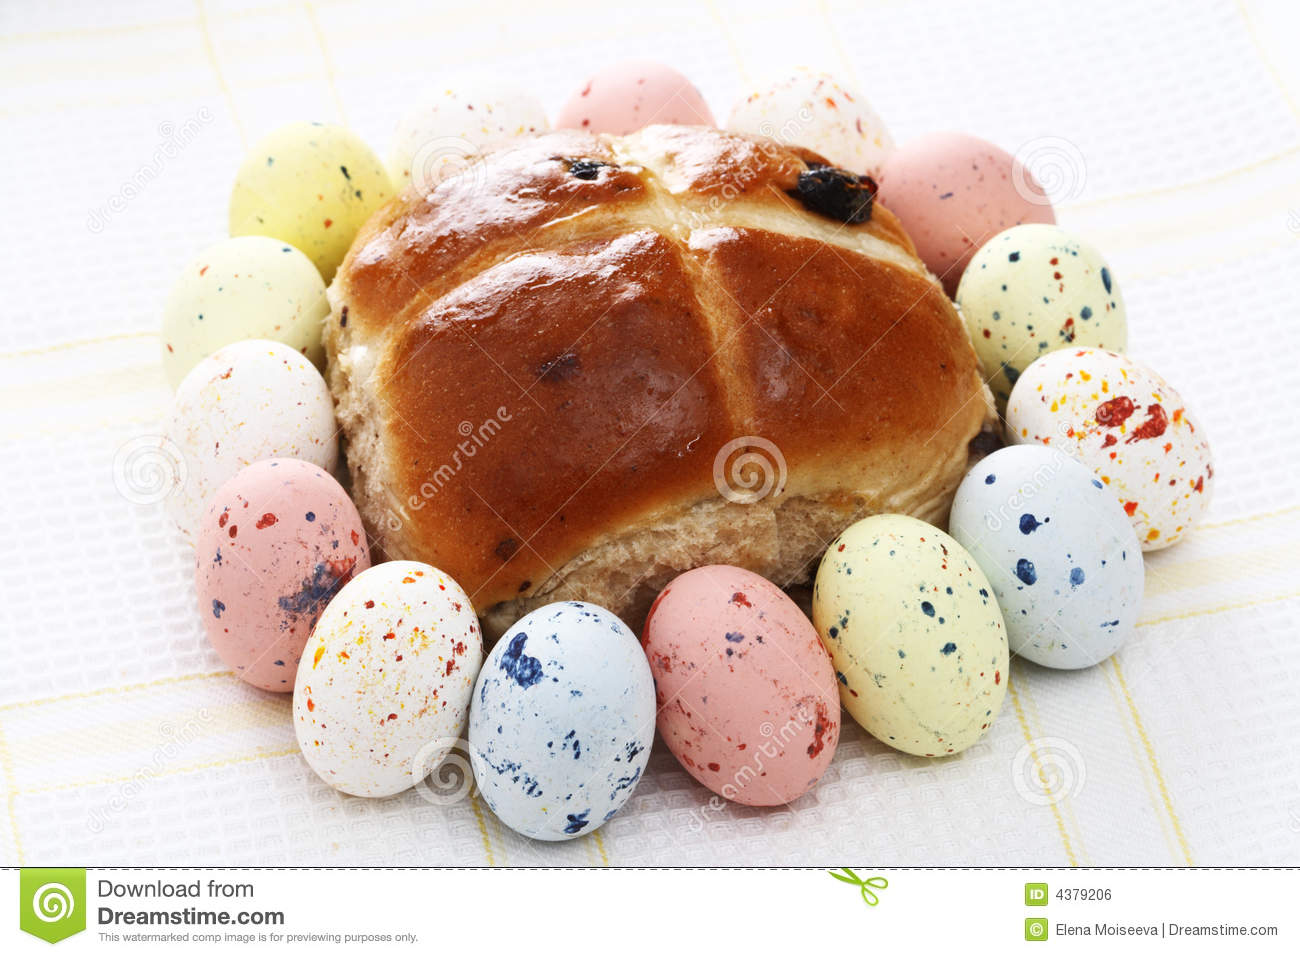 Hot Cross Bun Surrounded By Speckled Easter Eggs Royalty Free Stock Image